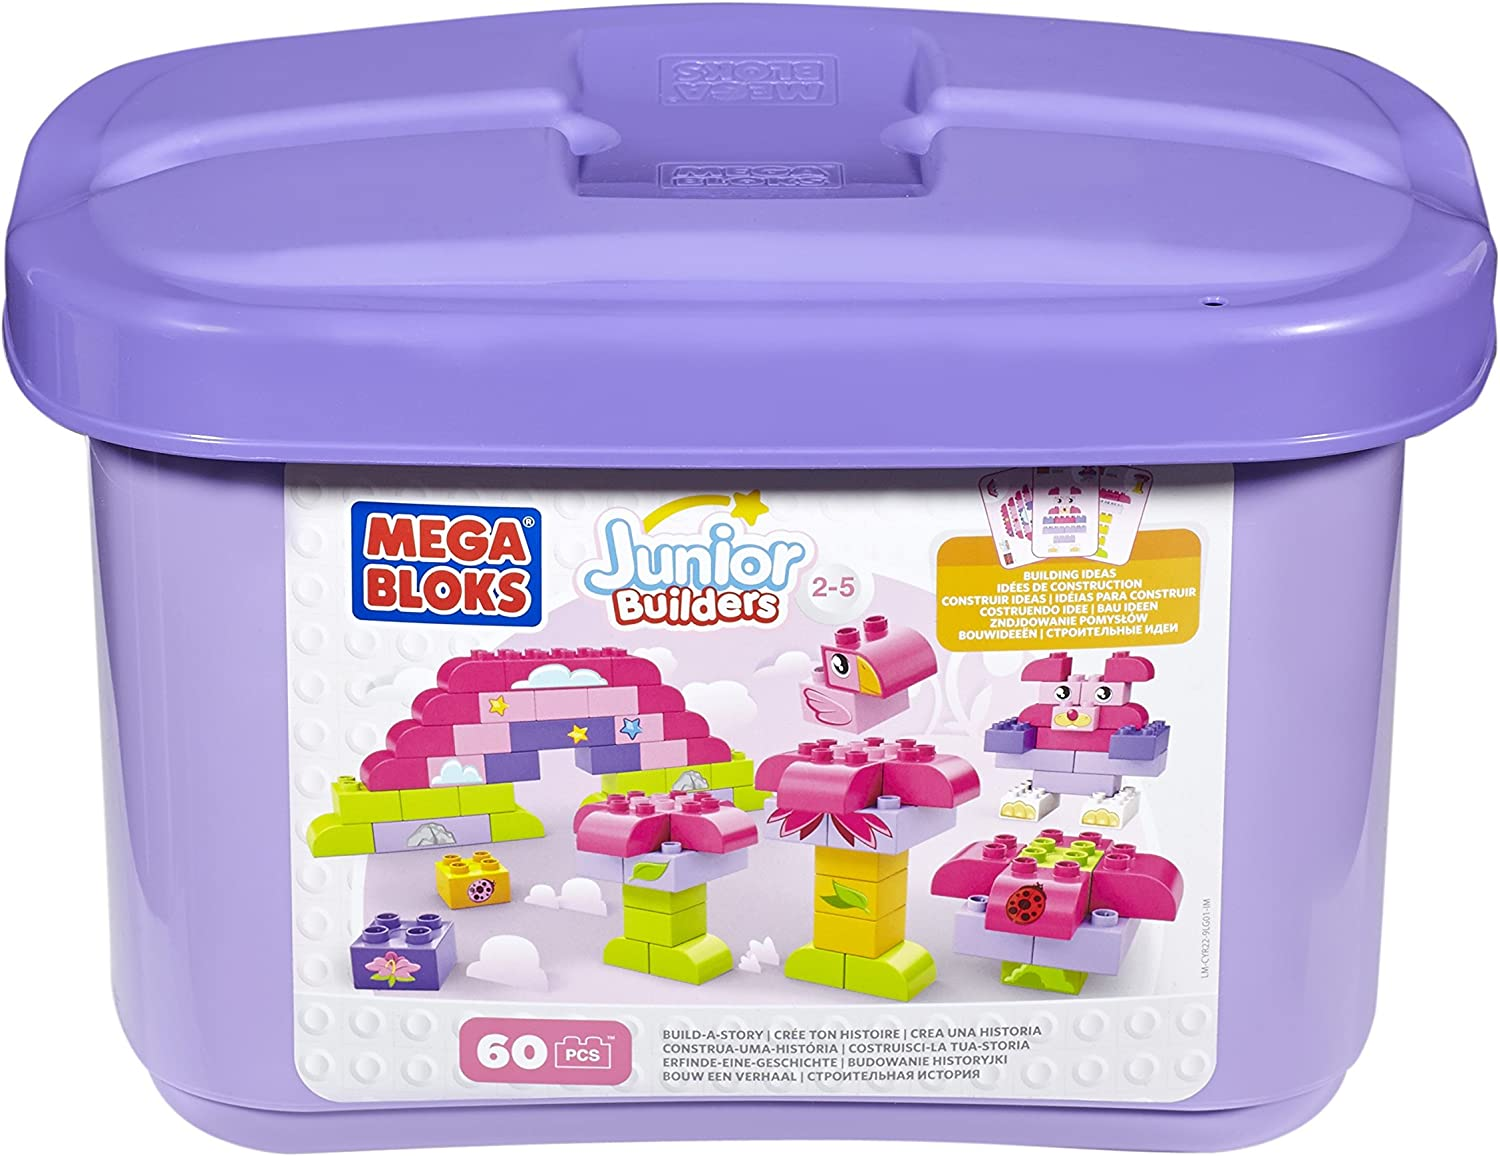 Mega Bloks Junior Builders Building Imagination (Pink)